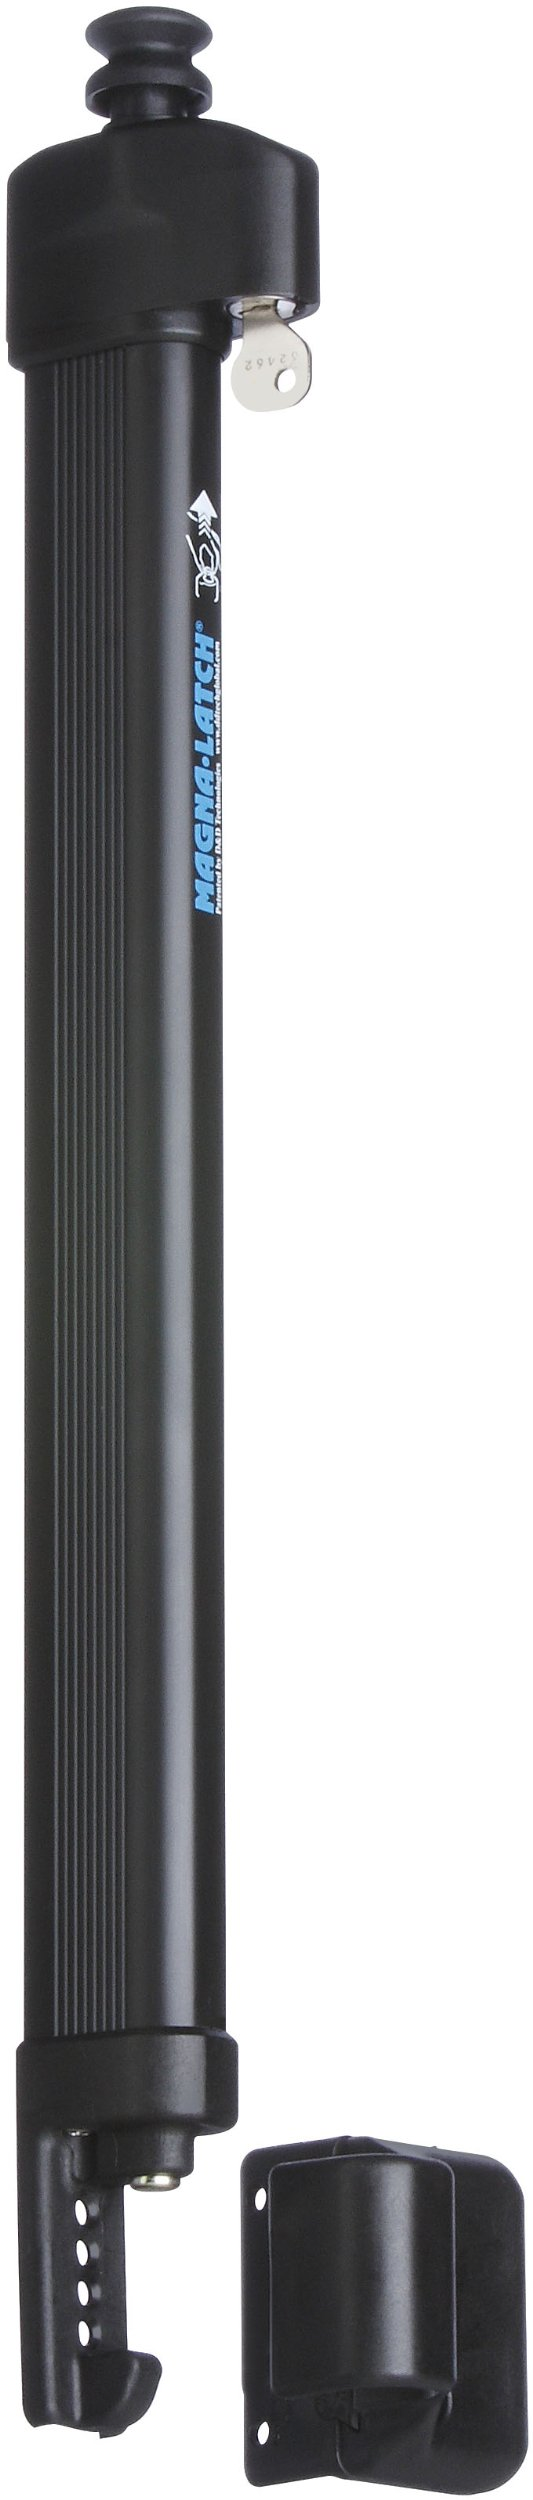 Stanley Hardware S836-205 CD6207 MagnaLatch Top Pull in Black, For Gates 48'' and Taller